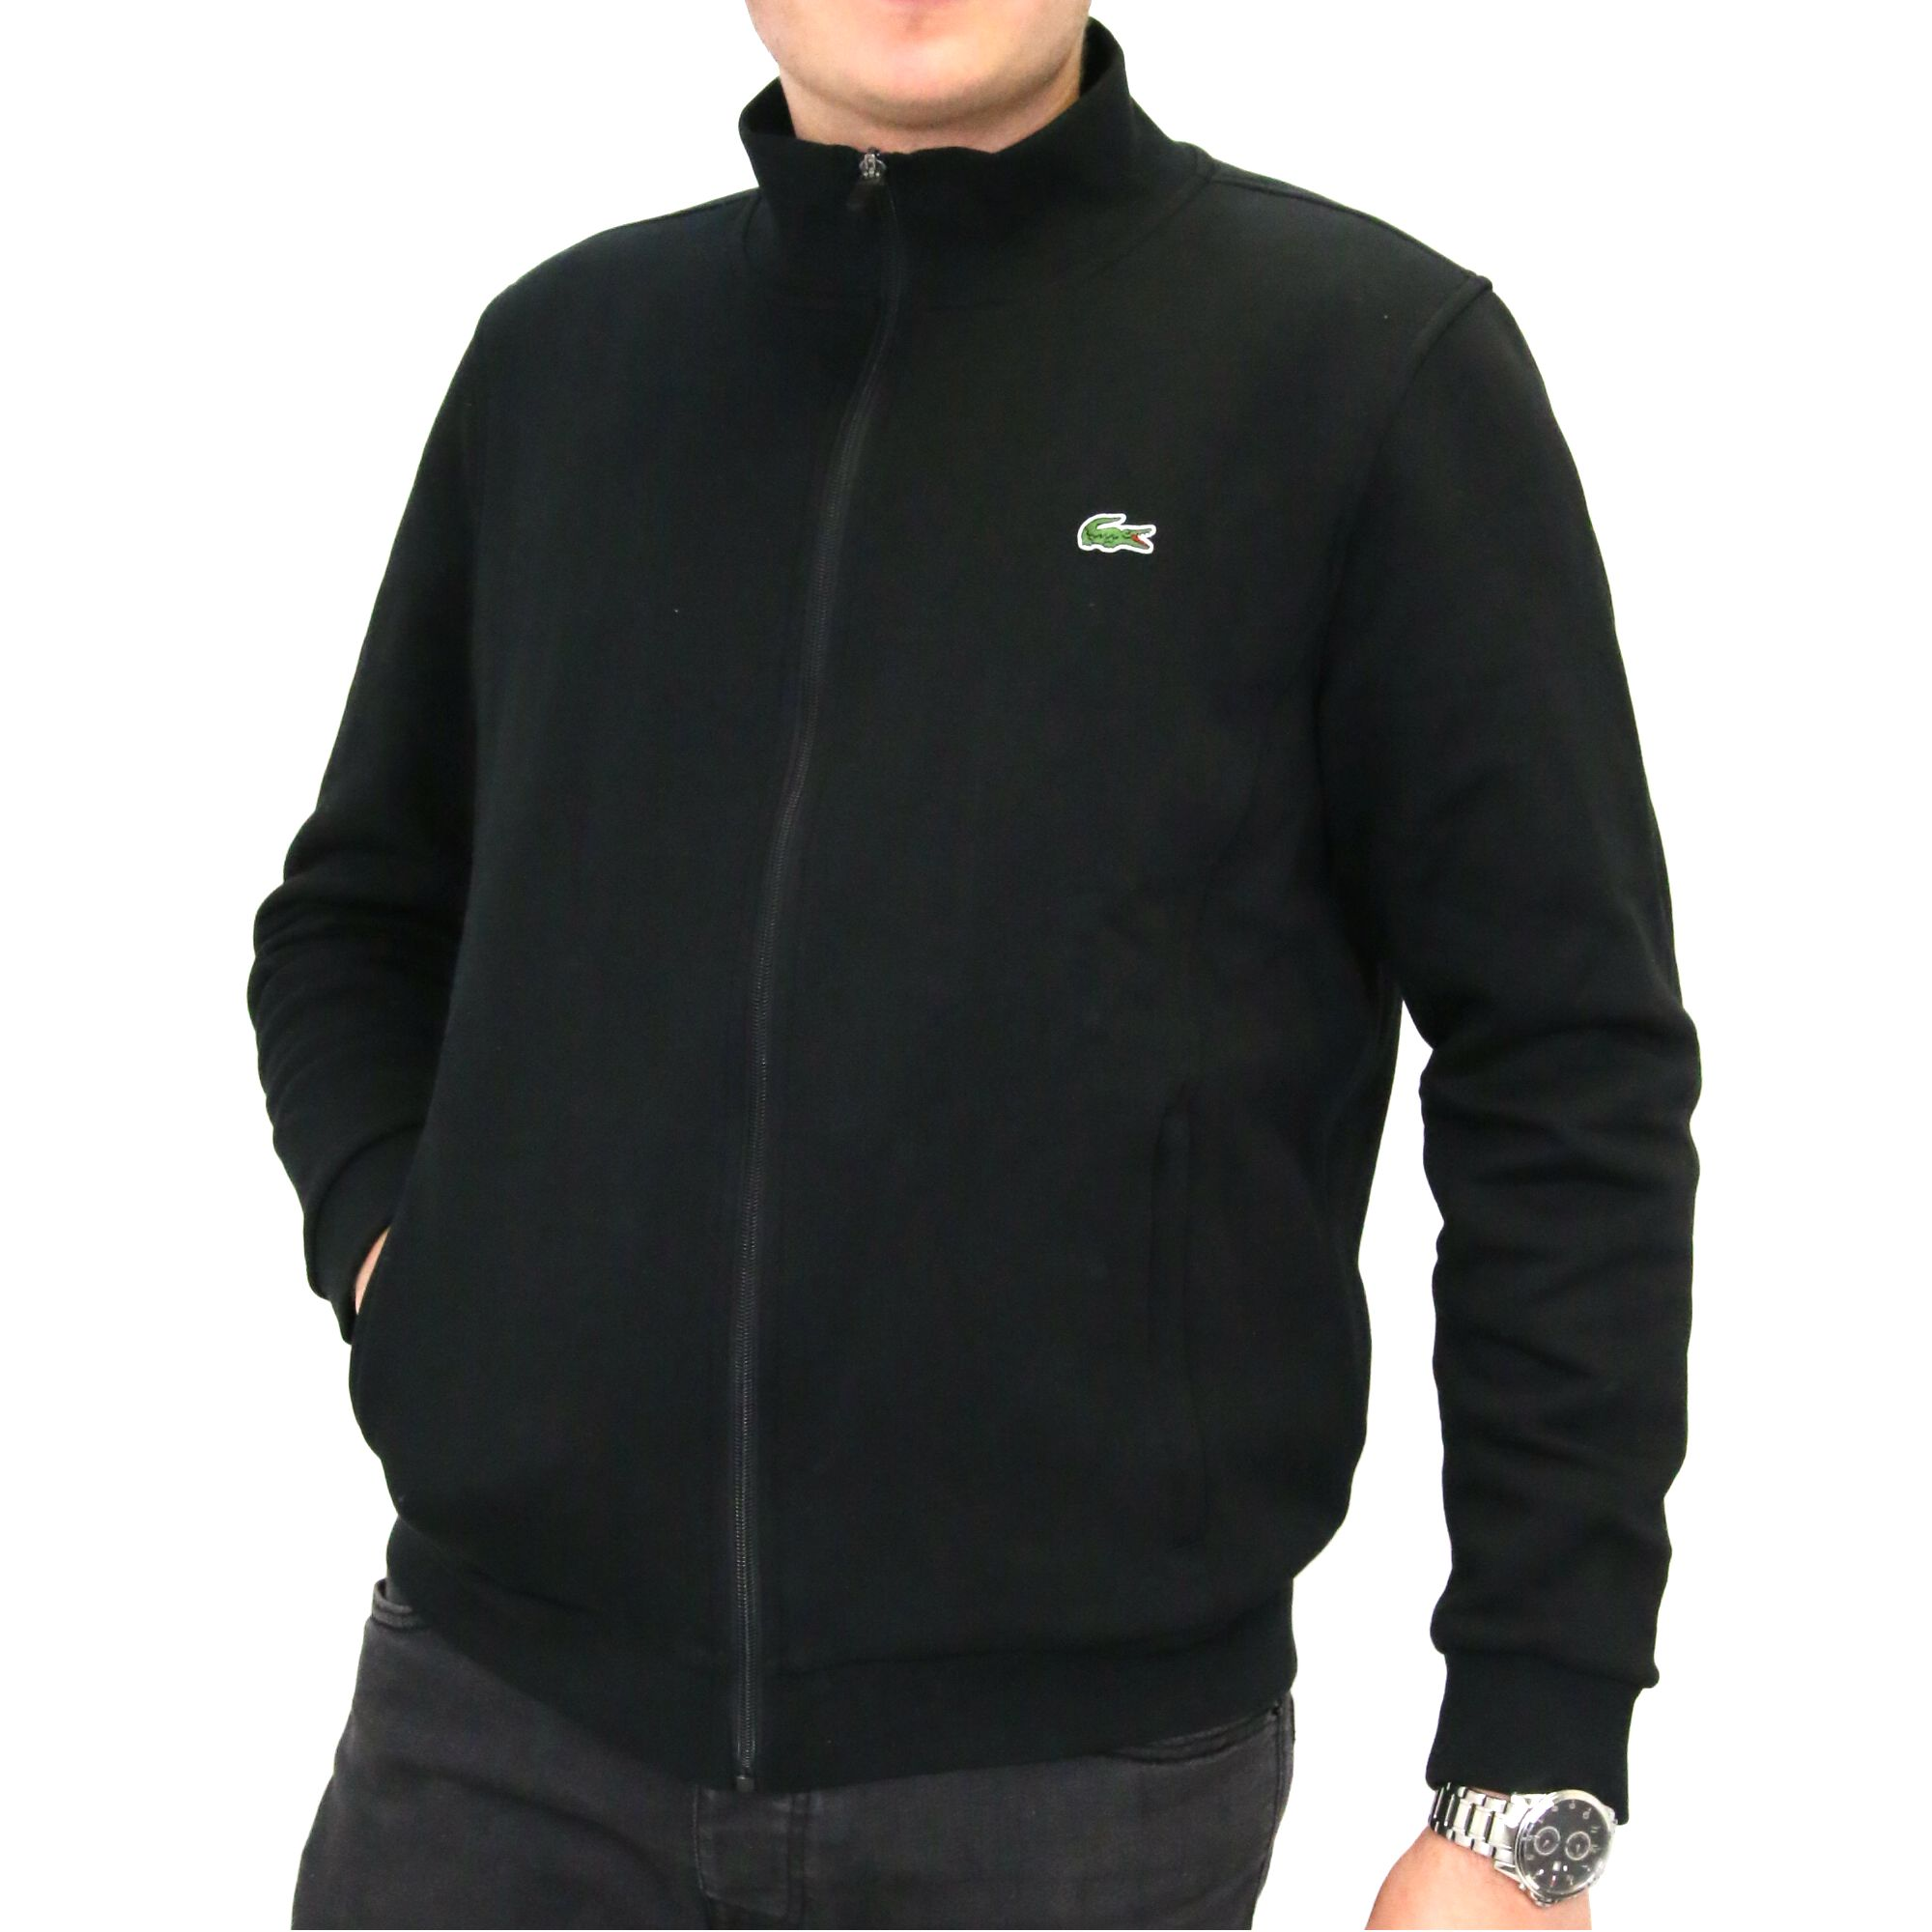 lacoste full zip fleece sweatshirt men 39 s pullover jumper. Black Bedroom Furniture Sets. Home Design Ideas